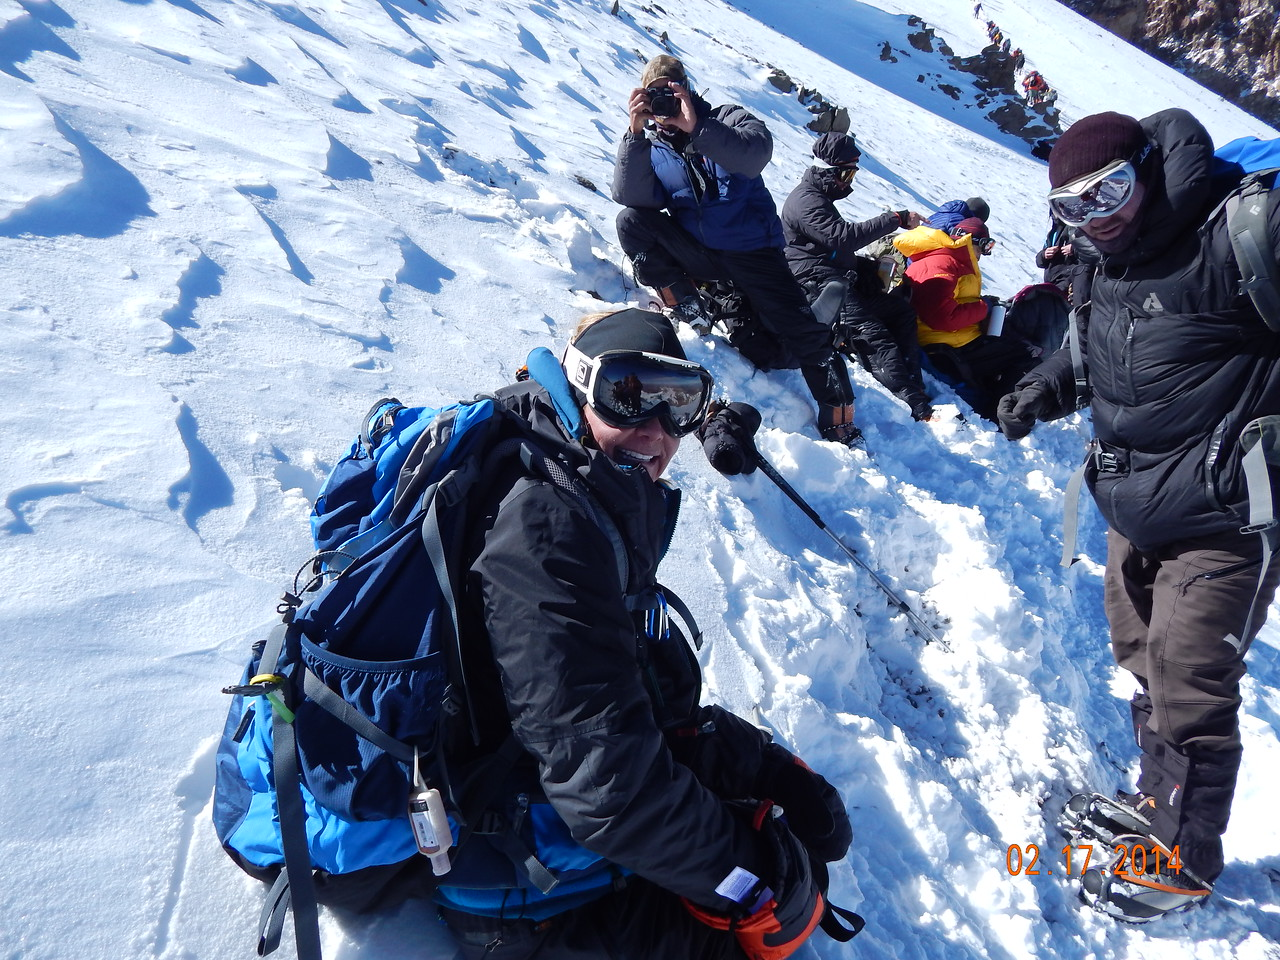 Only 4 more hours to go to reach the summit!